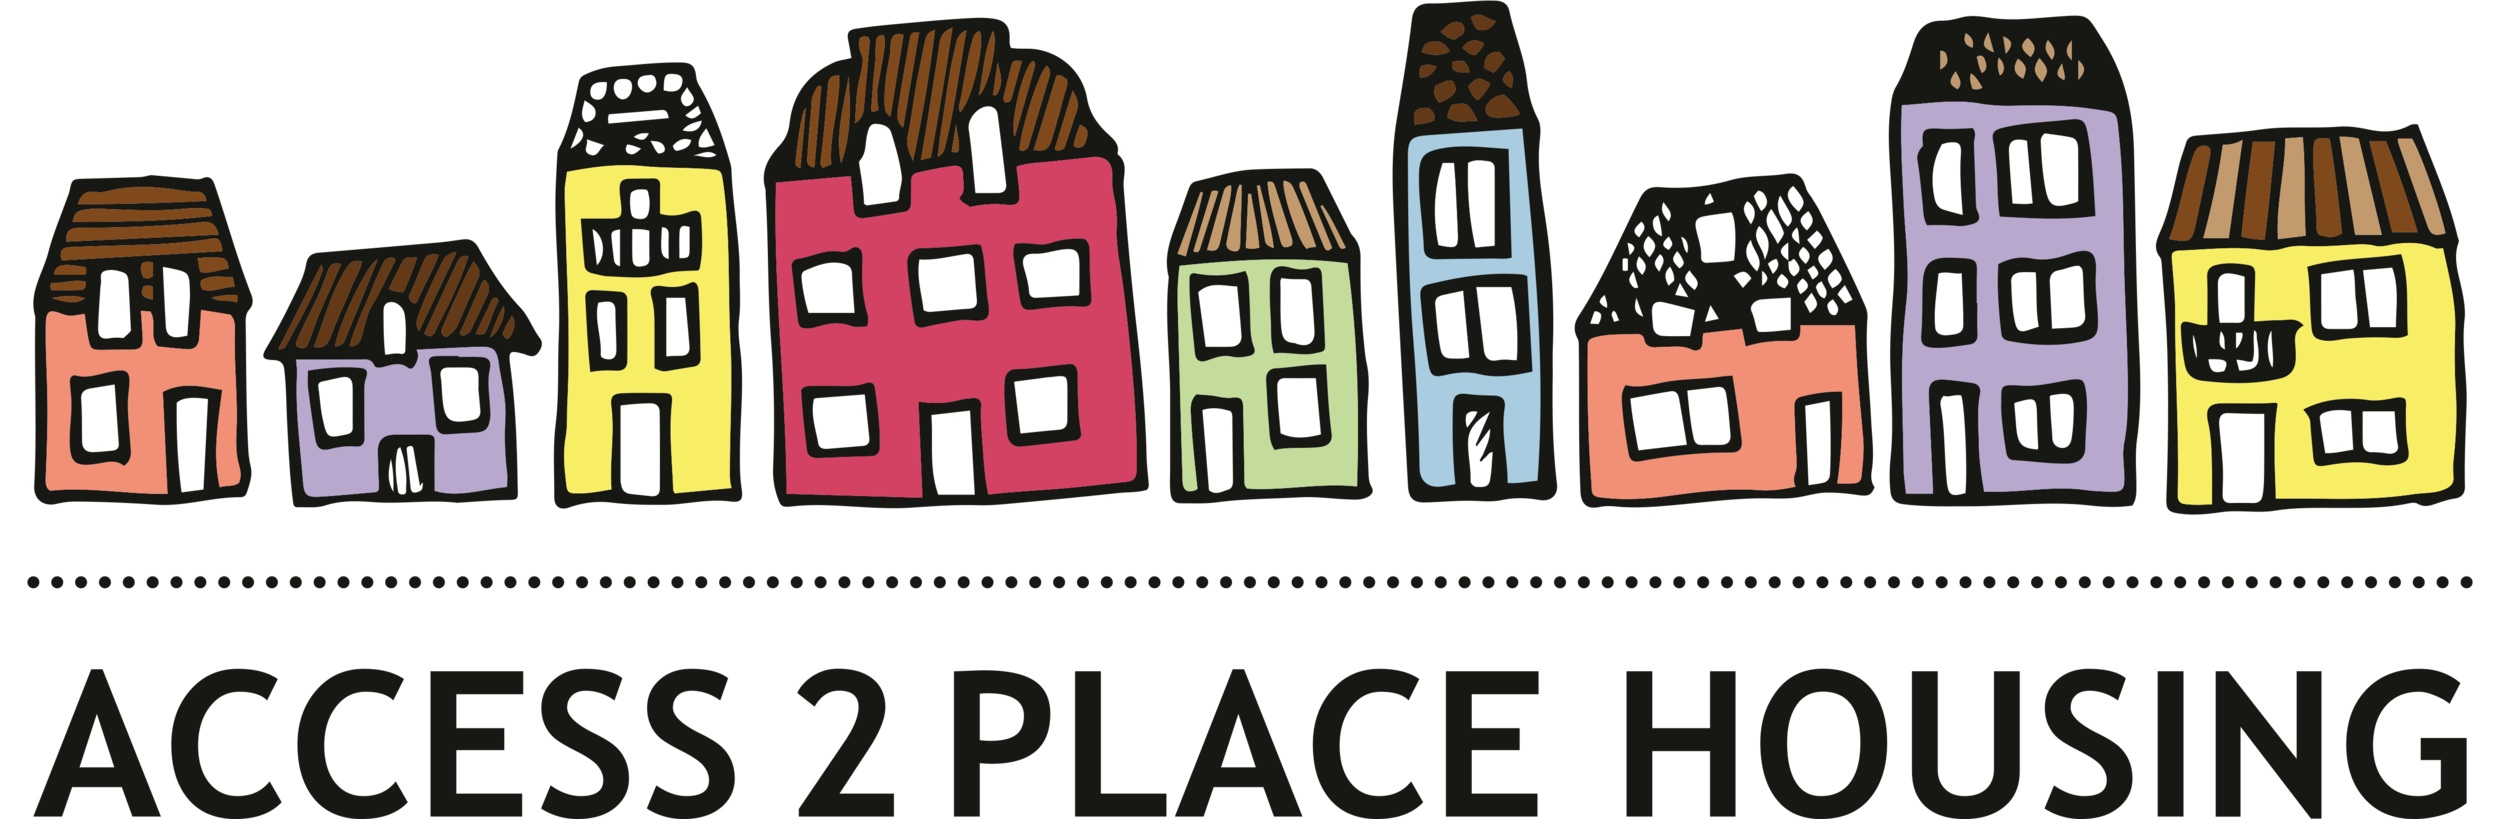 ACCESS 2 PLACE HOUSING